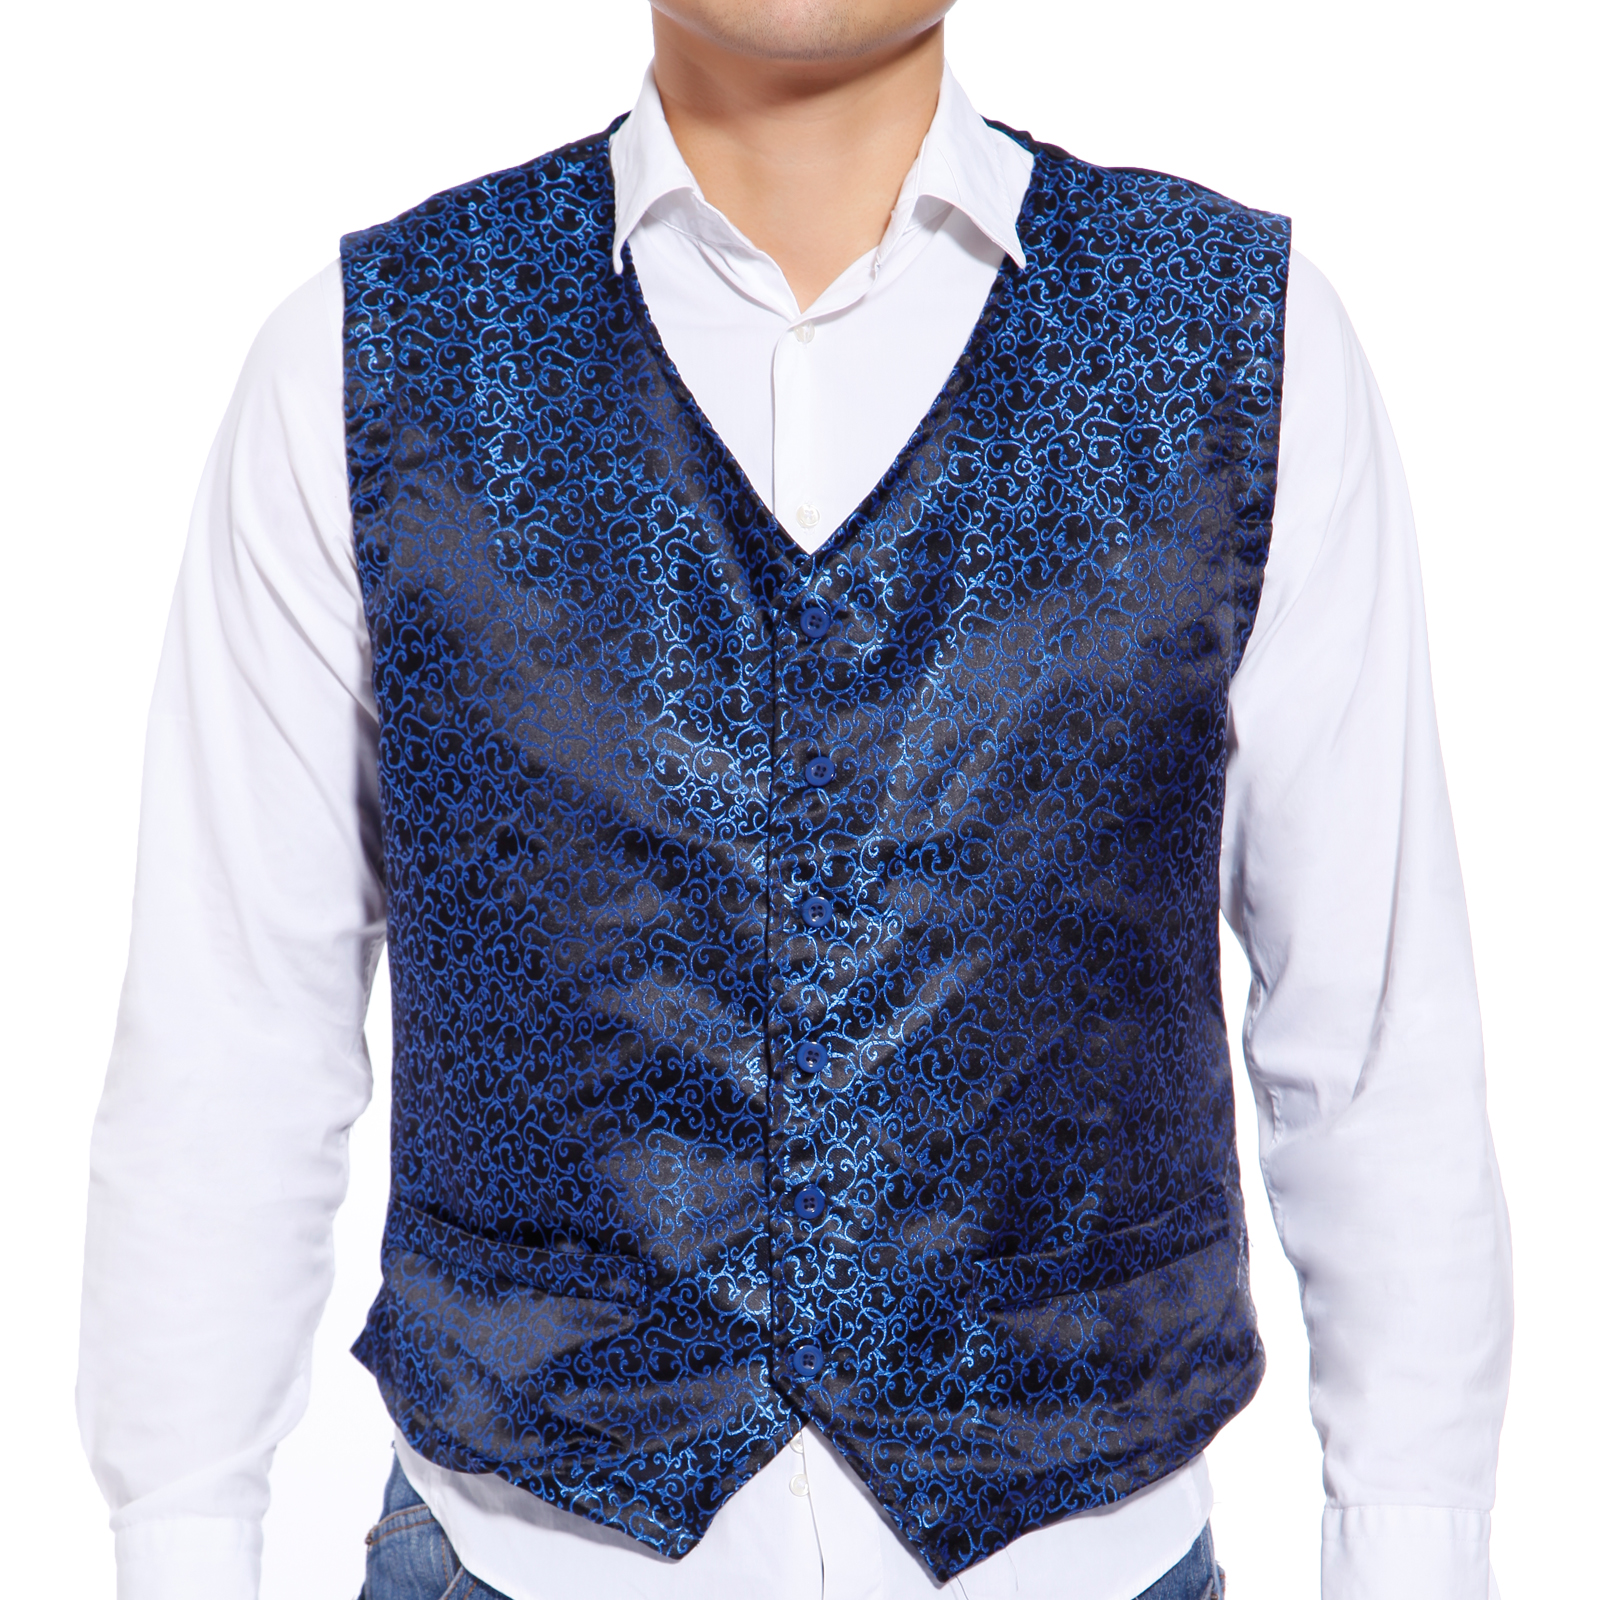 gilet veste a motif slim tuxedo waistcoat damasse uniforme serveur homme mariage ebay. Black Bedroom Furniture Sets. Home Design Ideas